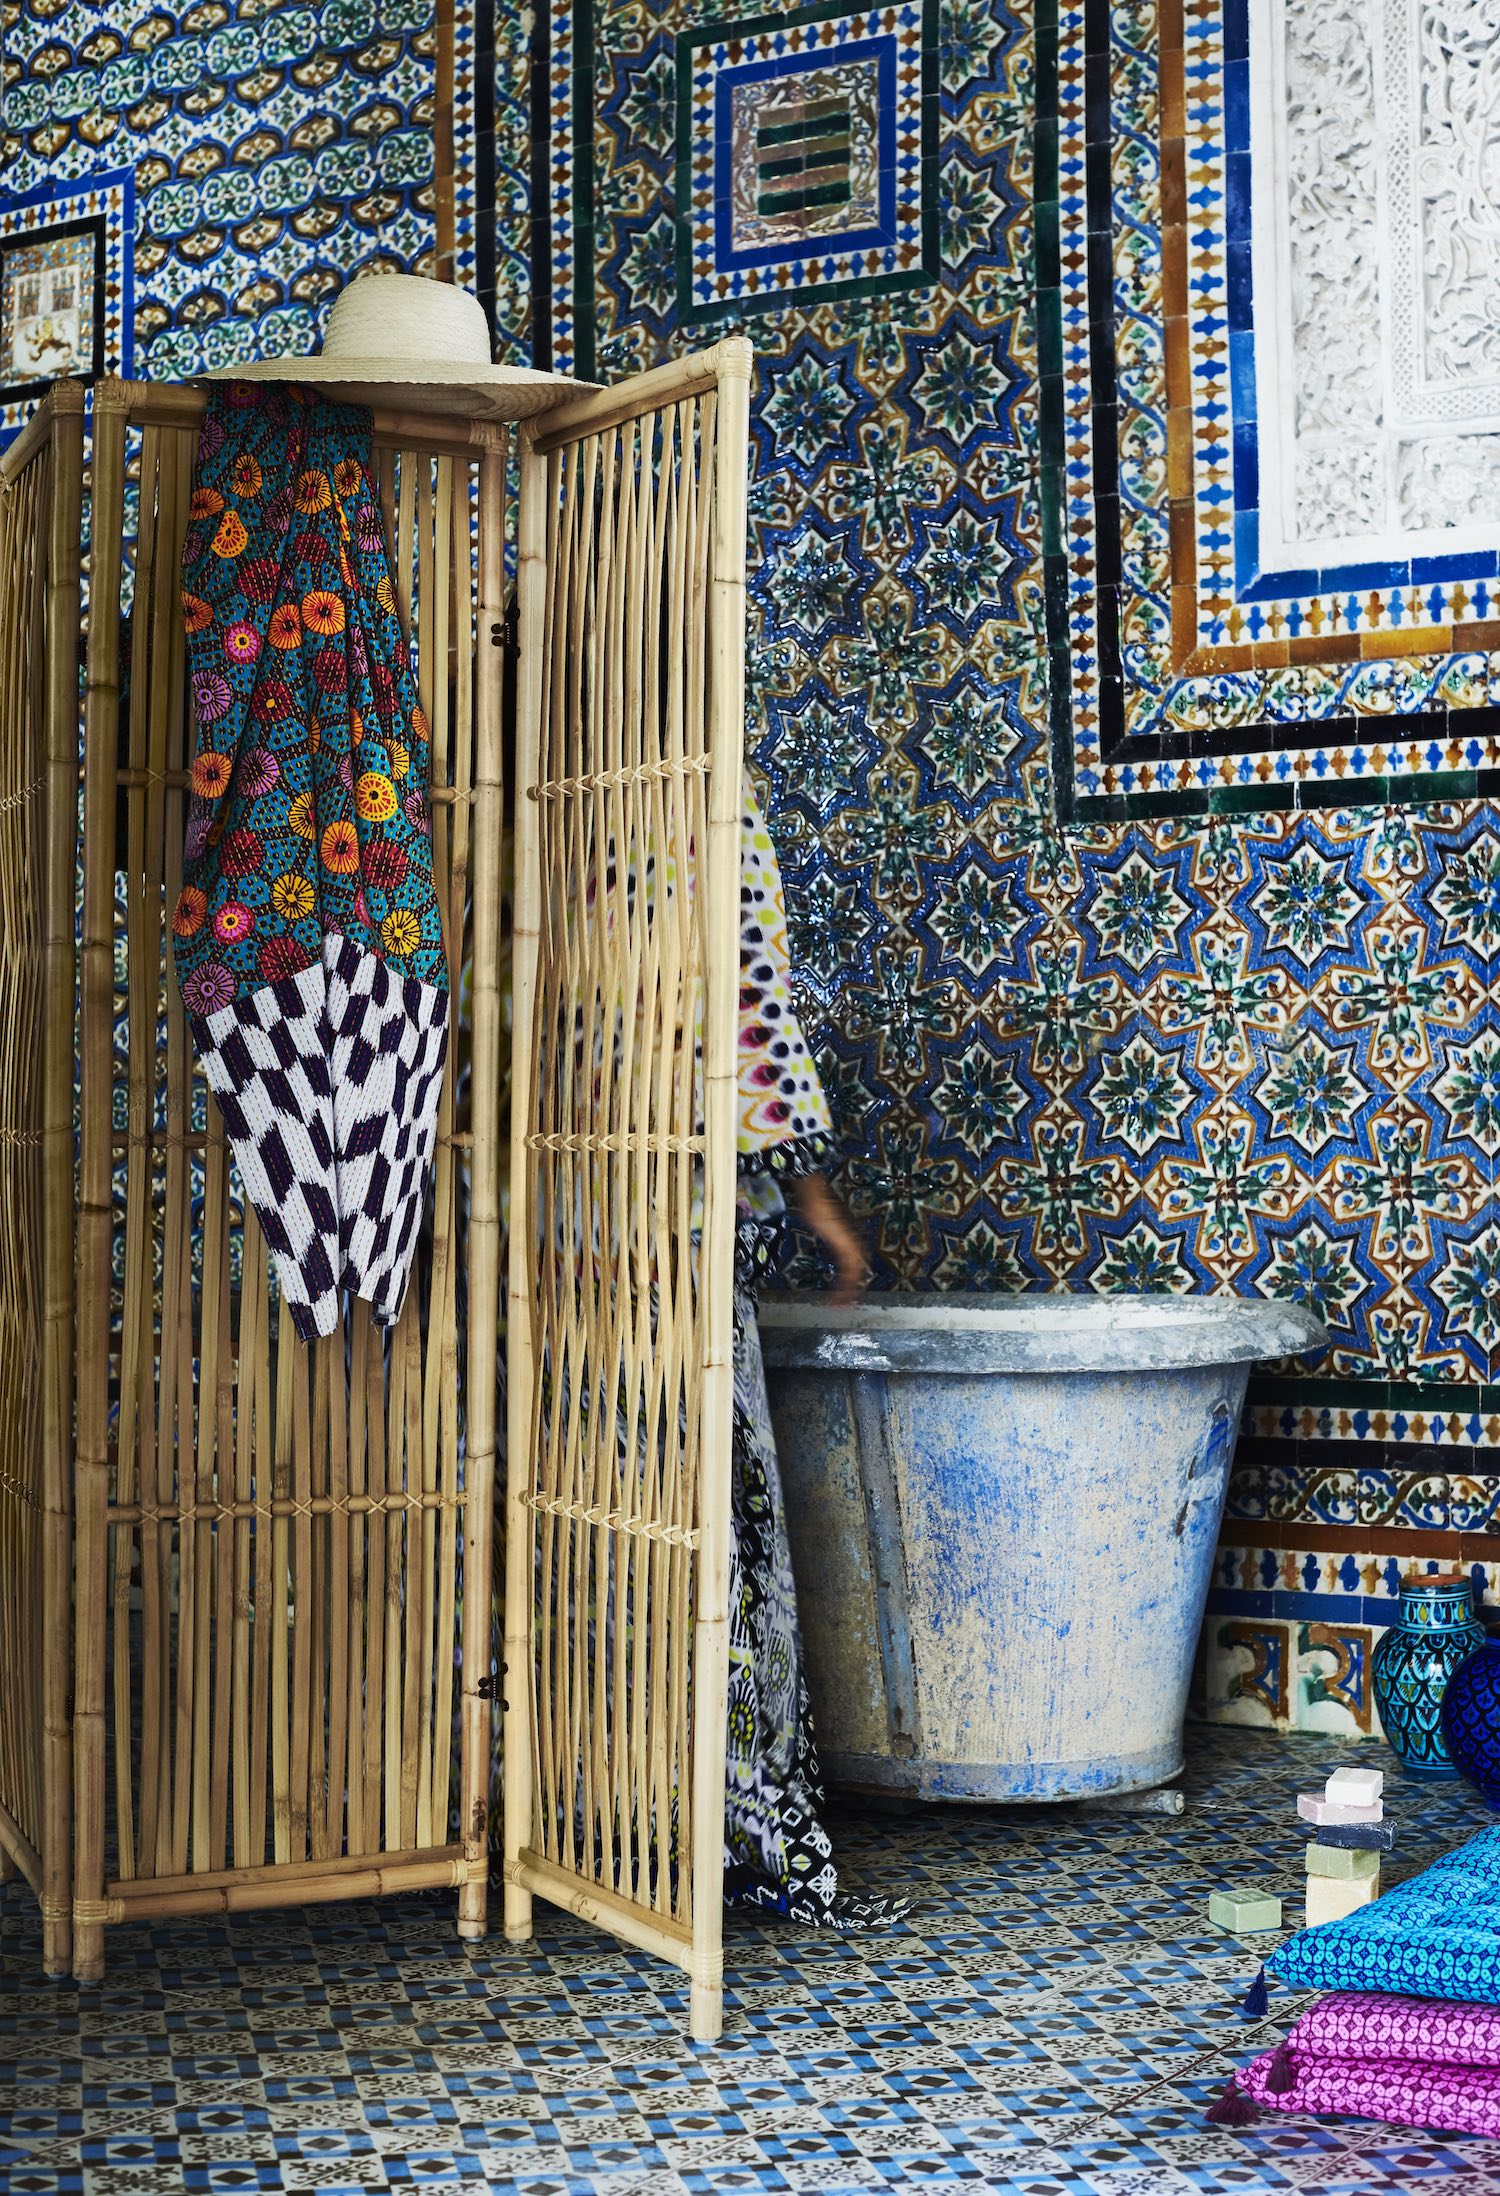 Jassa, Ikea newest collaboration between Piet Hein Eek and four of its own designers, is set to hit the shops in March and I am seriously excited! It is a limited edition collection with some very cool boho vibes.